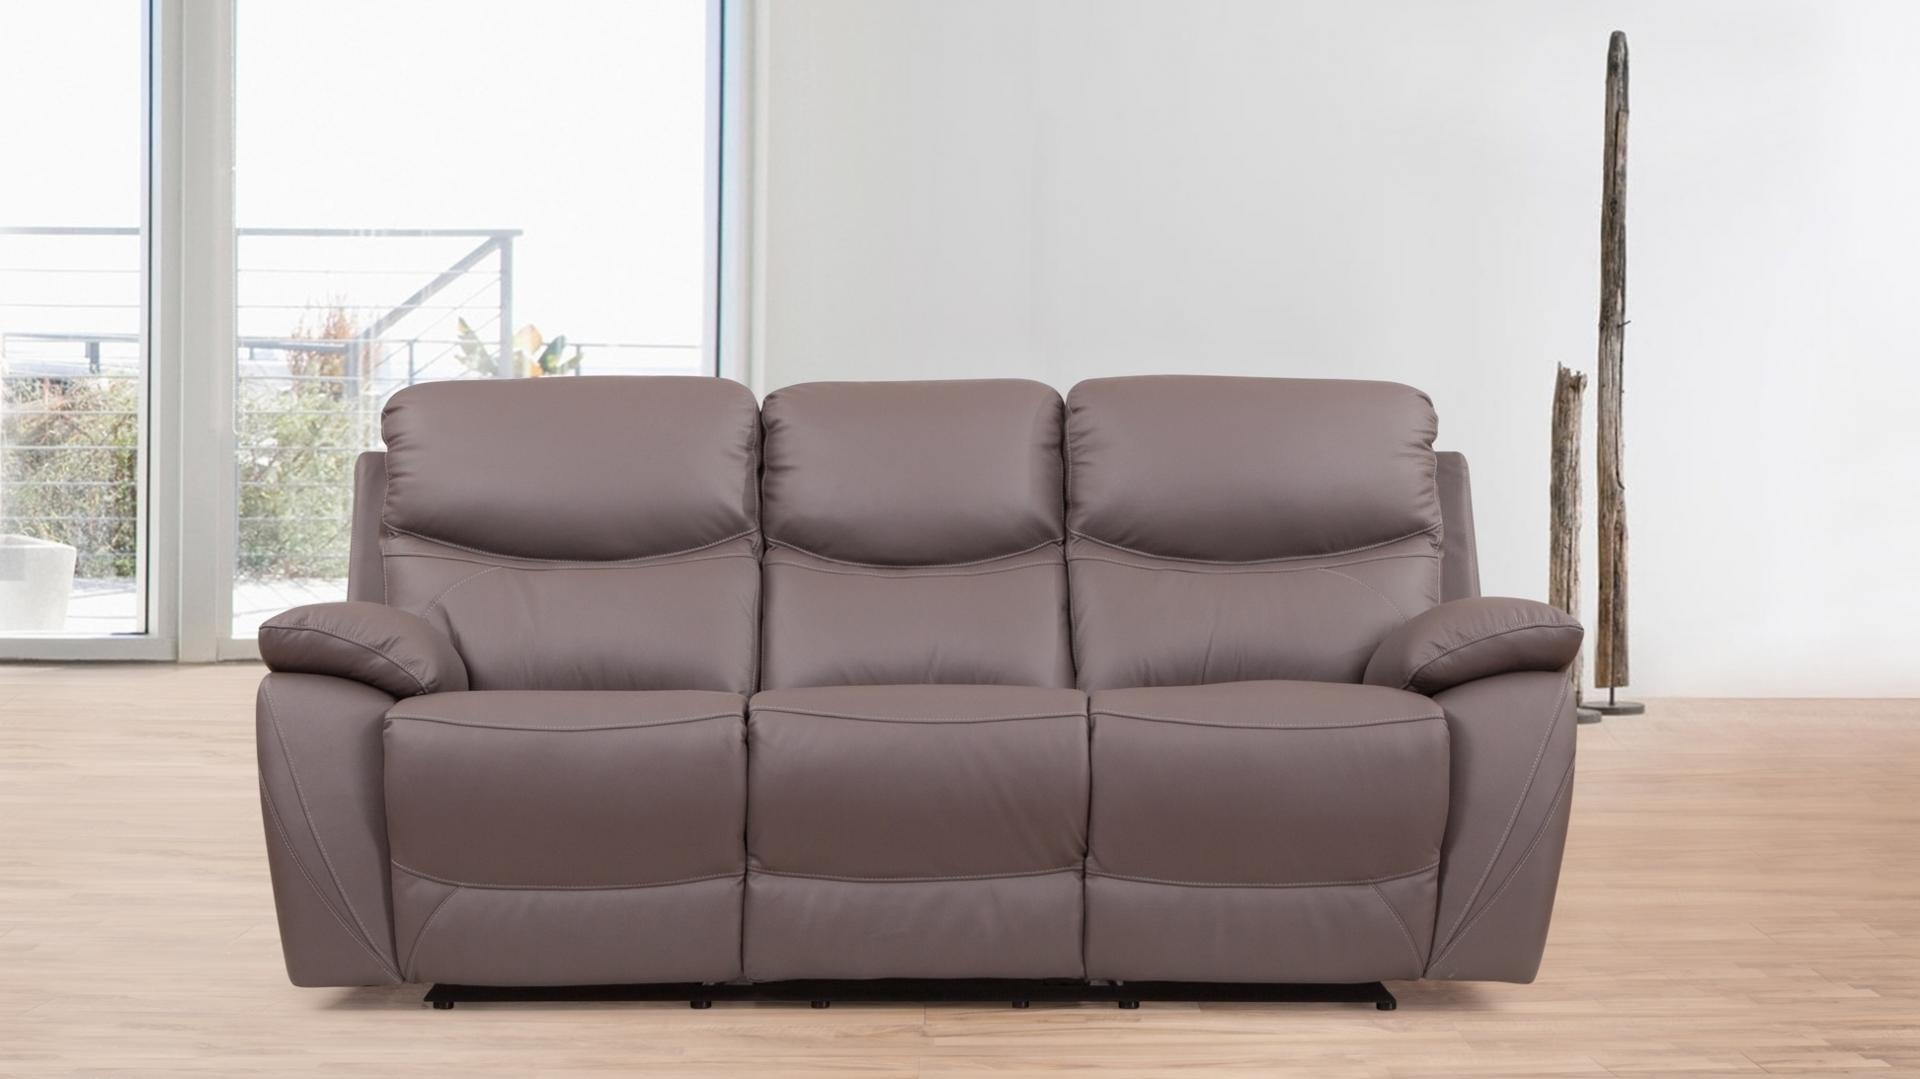 Chelsea Leather Recliner Three Seater Sofa - Lounge Life